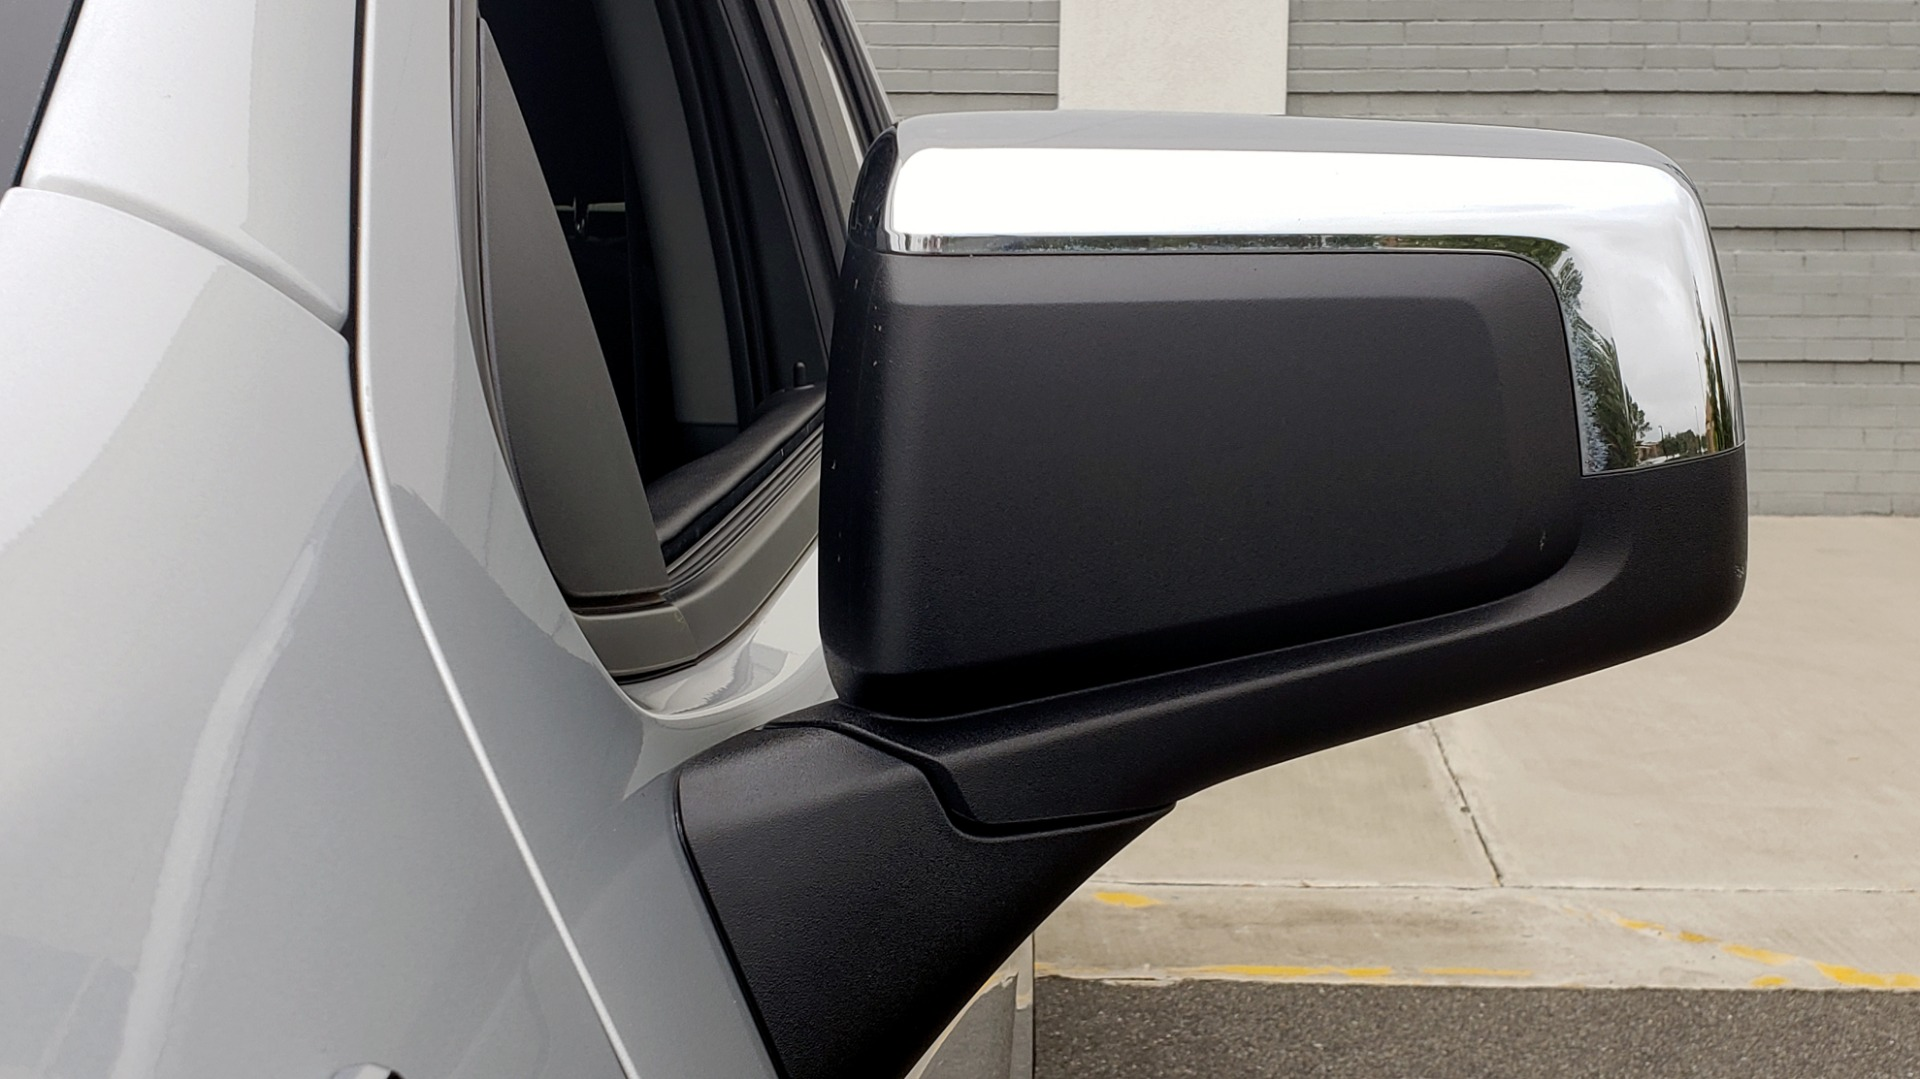 Used 2020 Chevrolet SILVERADO 1500 LT 4WD DOUBLECAB 147 WB / 5.3L V8 / BEDLINER / REARVIEW for sale $41,995 at Formula Imports in Charlotte NC 28227 24